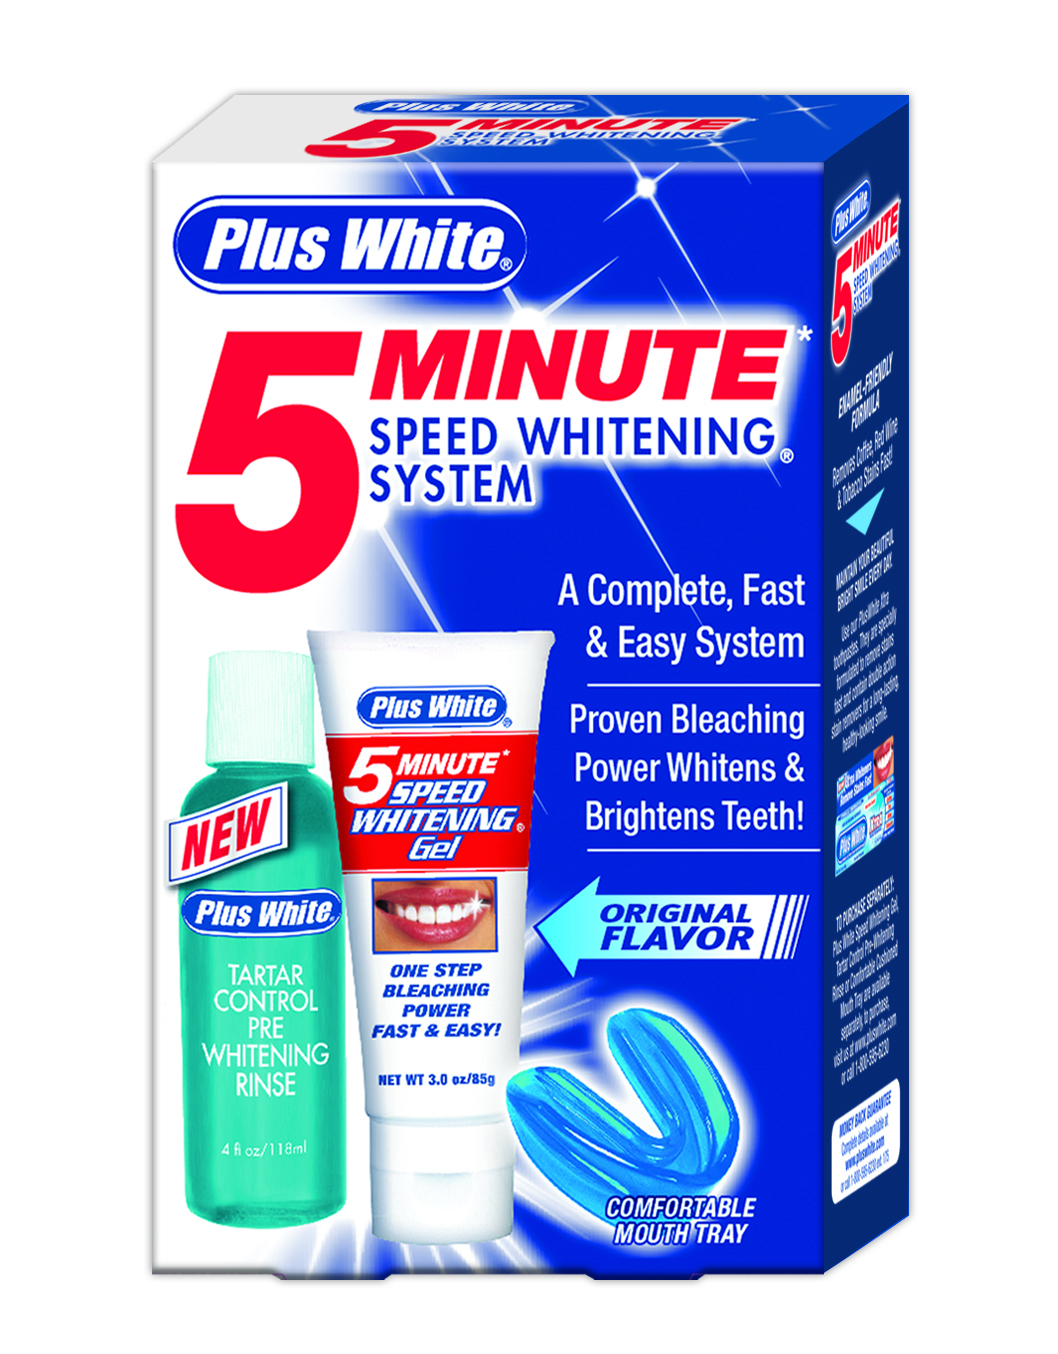 5 Minute Makeup Must Haves: Plus White 5 Minute Speed Whitening